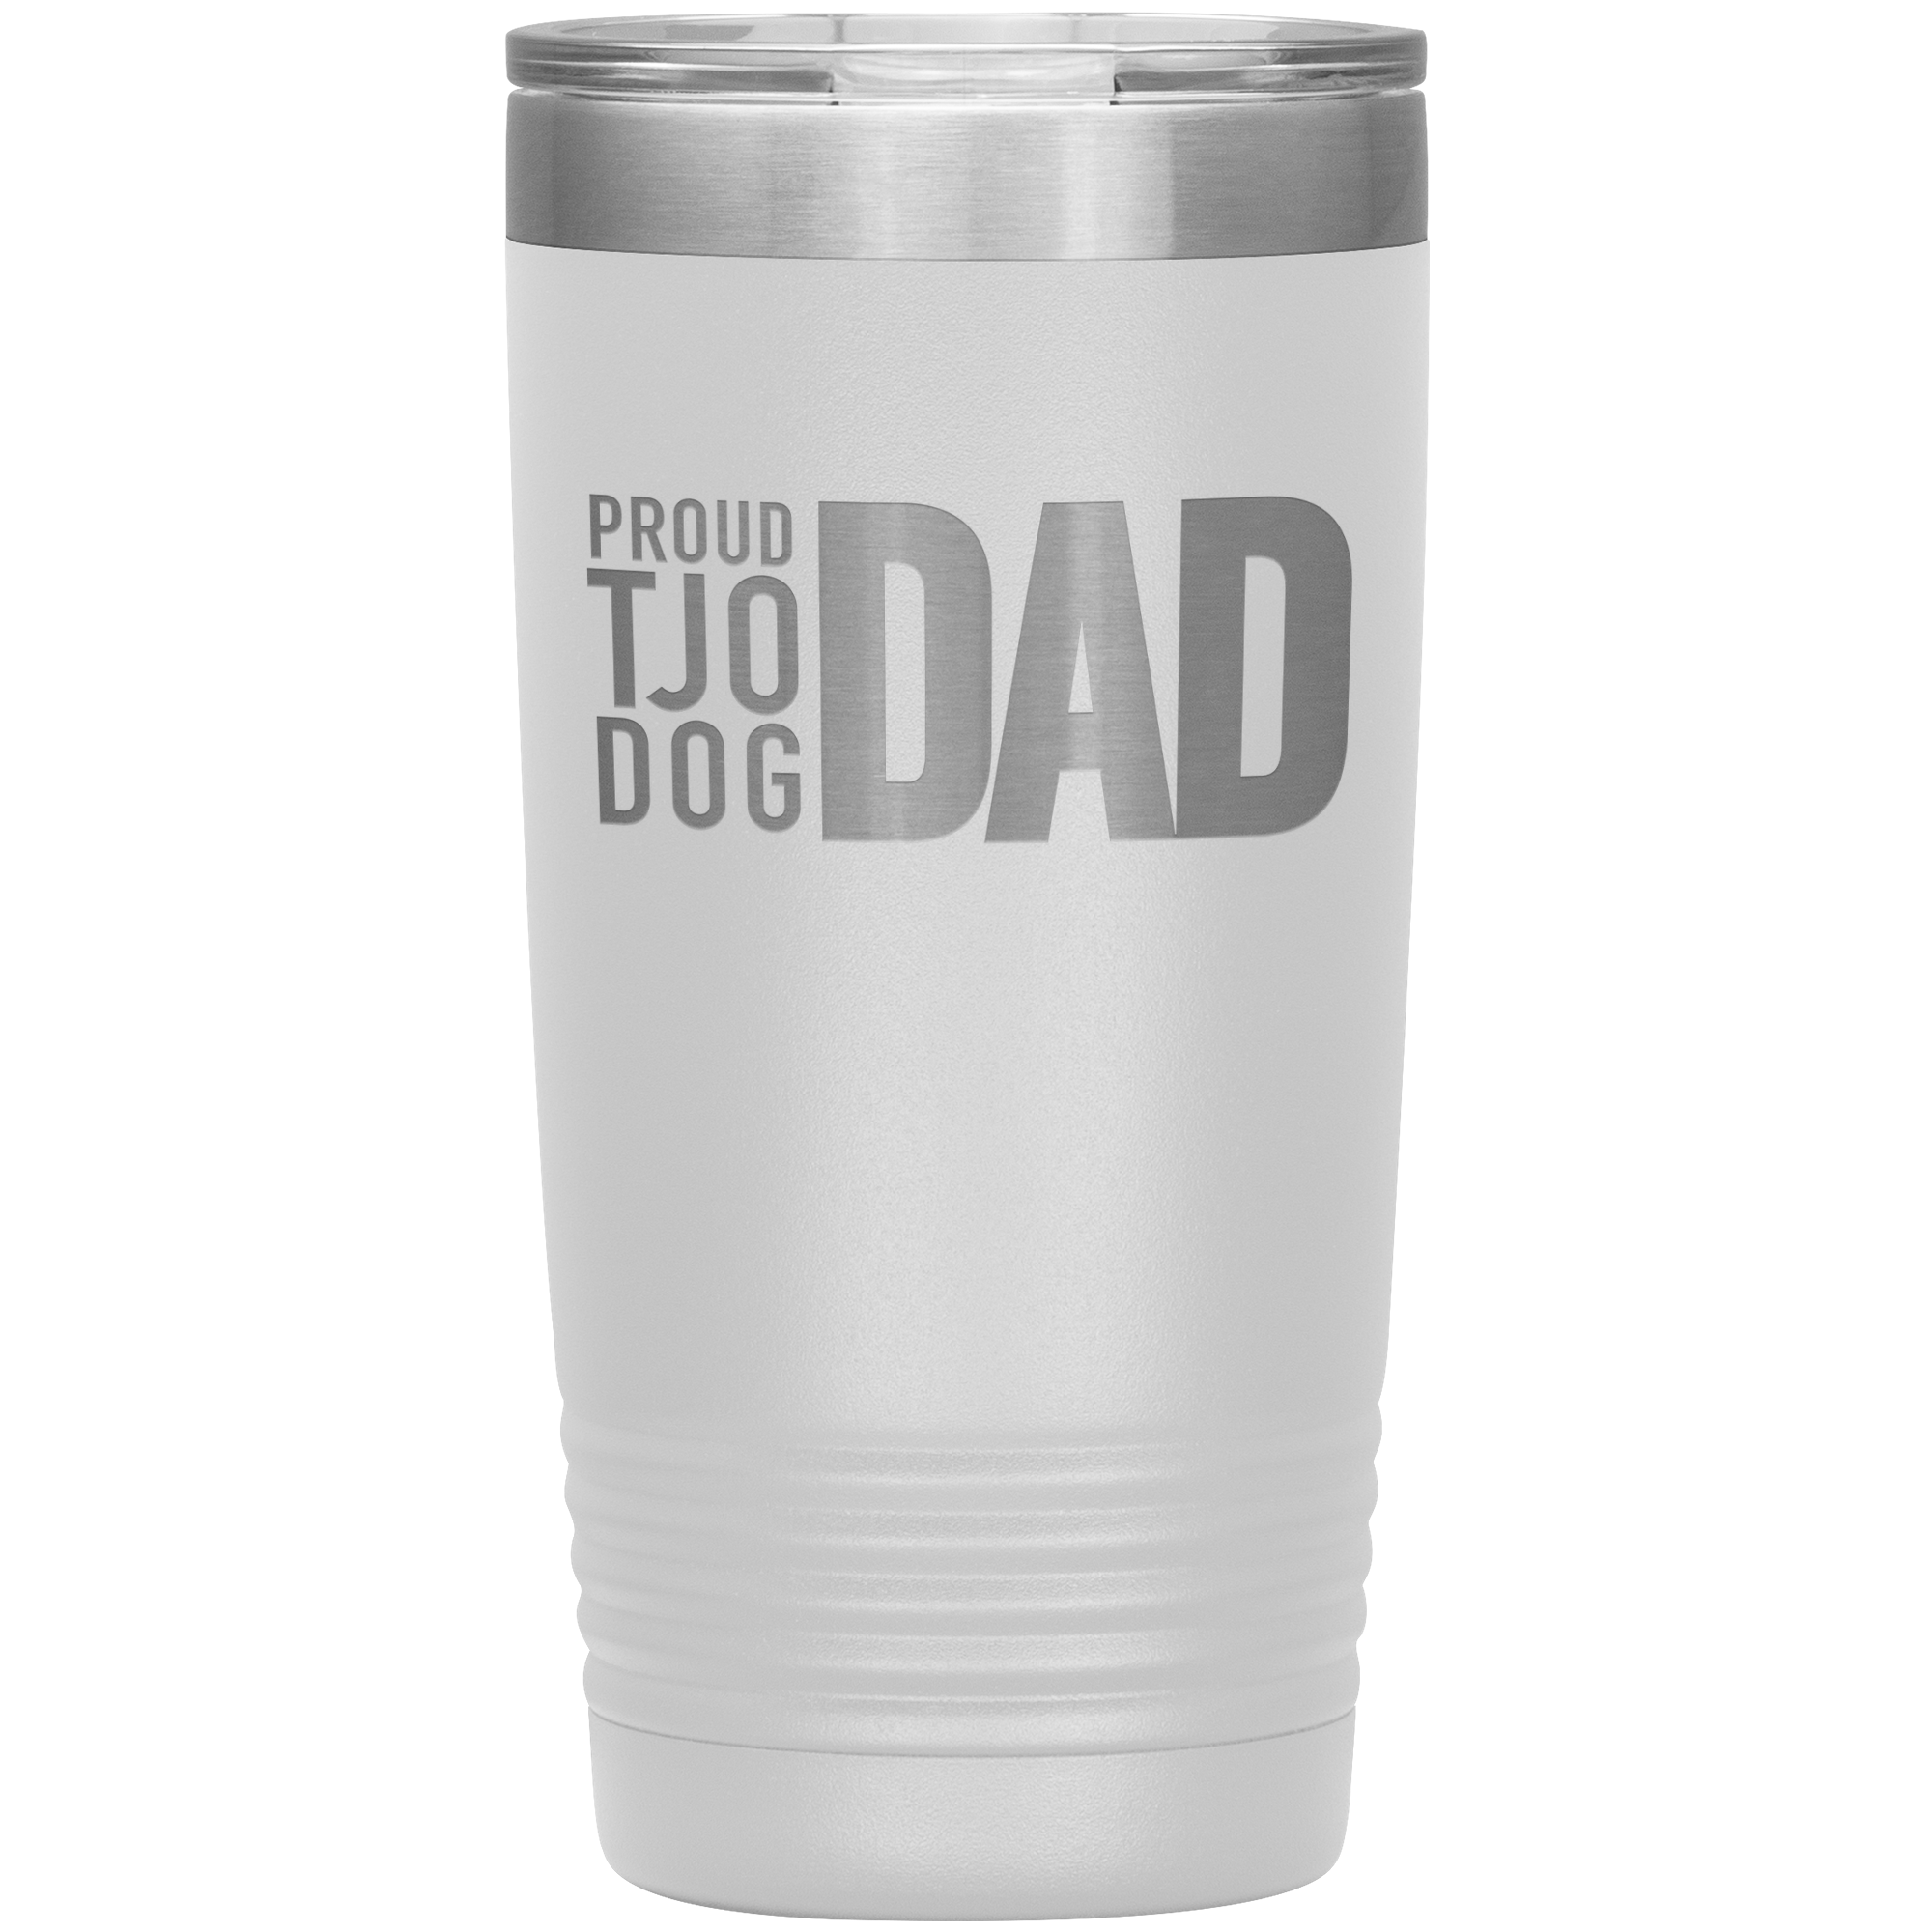 Foundation for TJO Animals - 20 oz. Tumbler